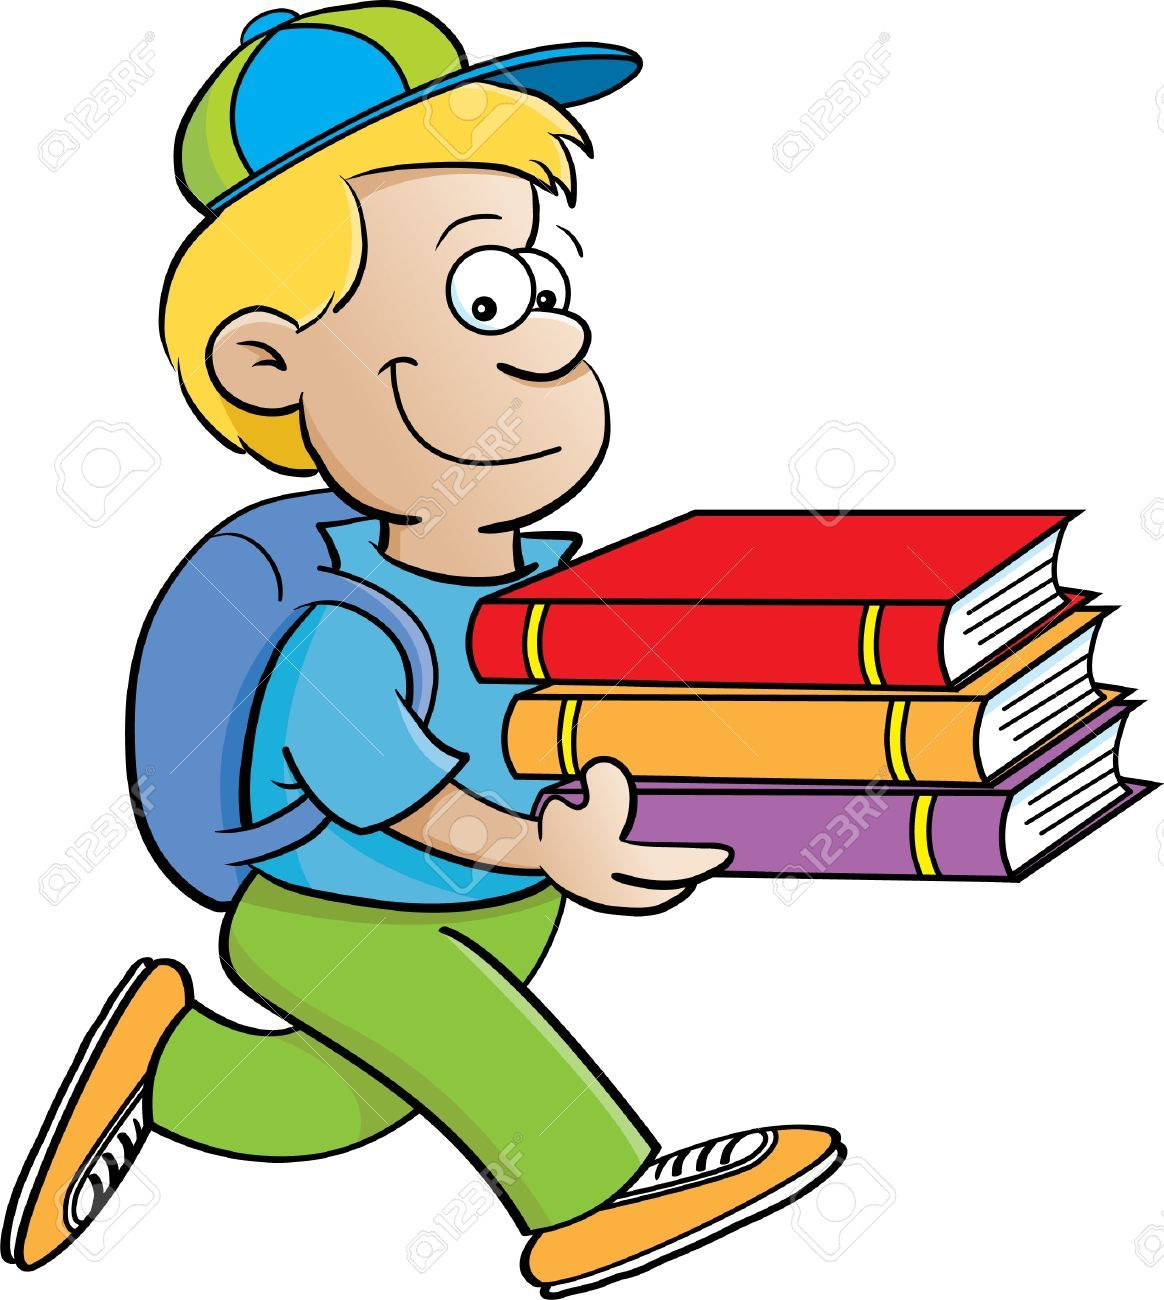 Carrying clipart image library Carrying clipart 3 » Clipart Portal image library